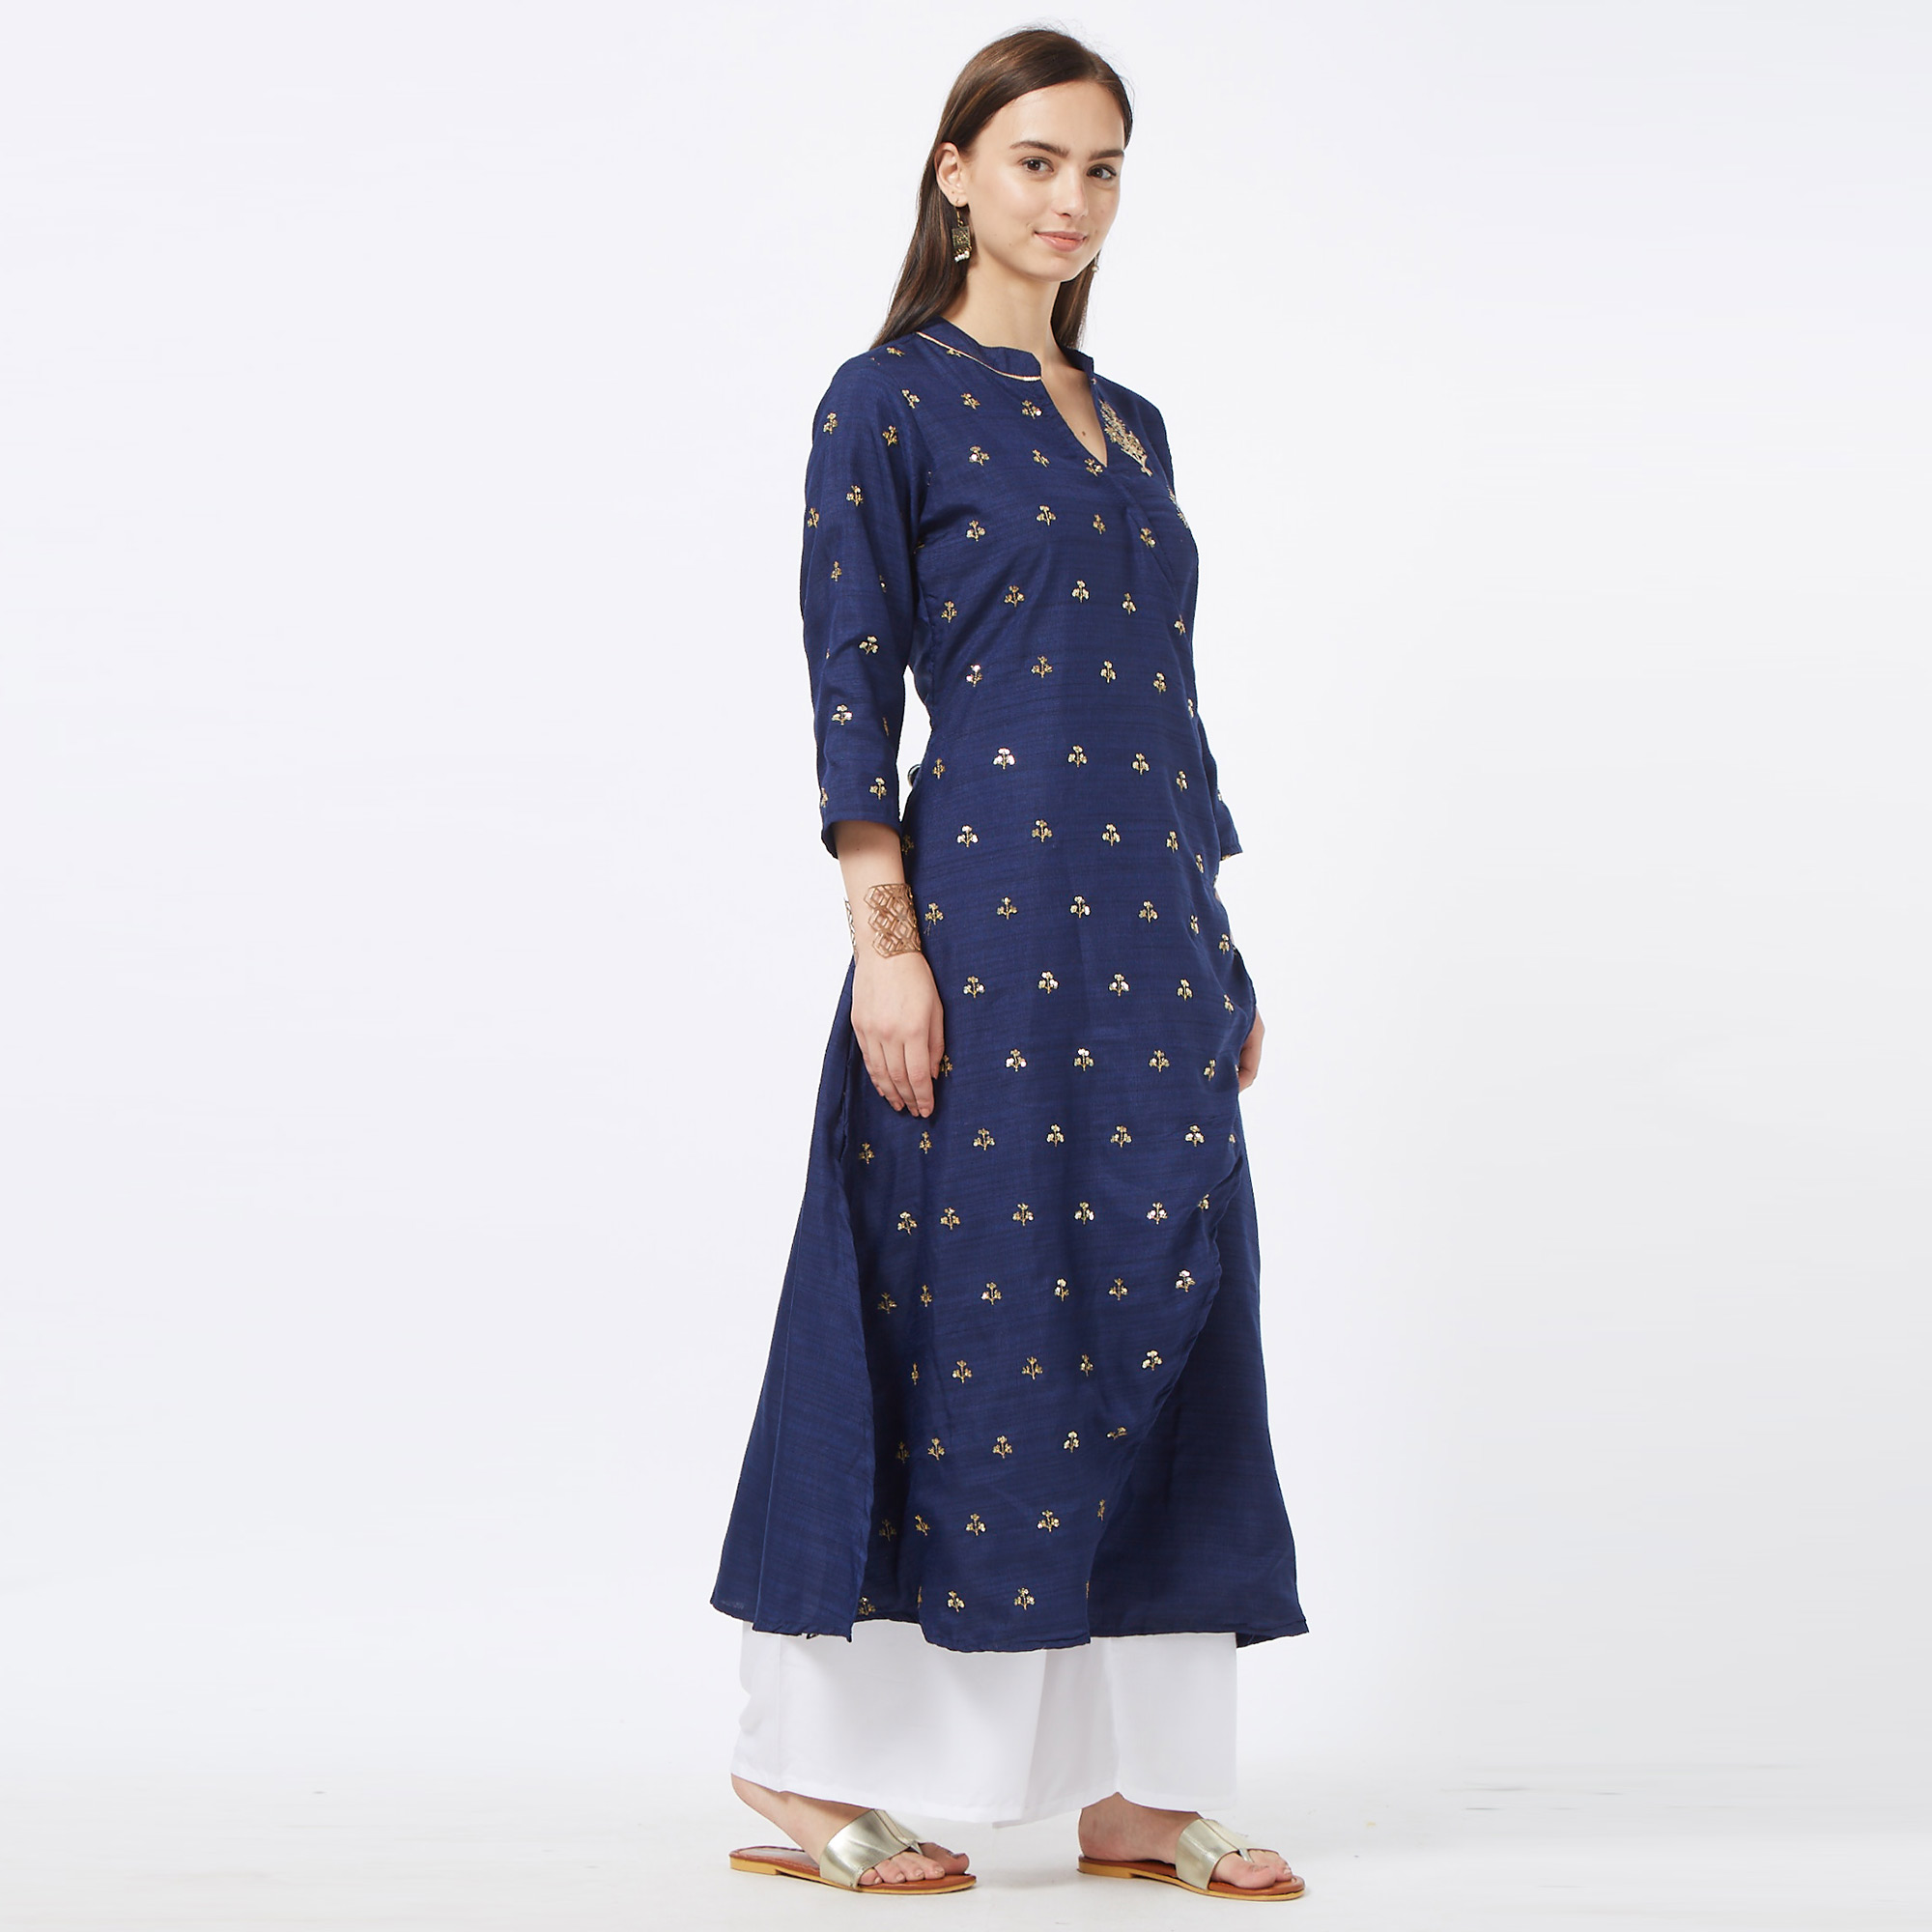 Excellent Navy Blue Colored Partywear Embroidered Cotton Long Kurti